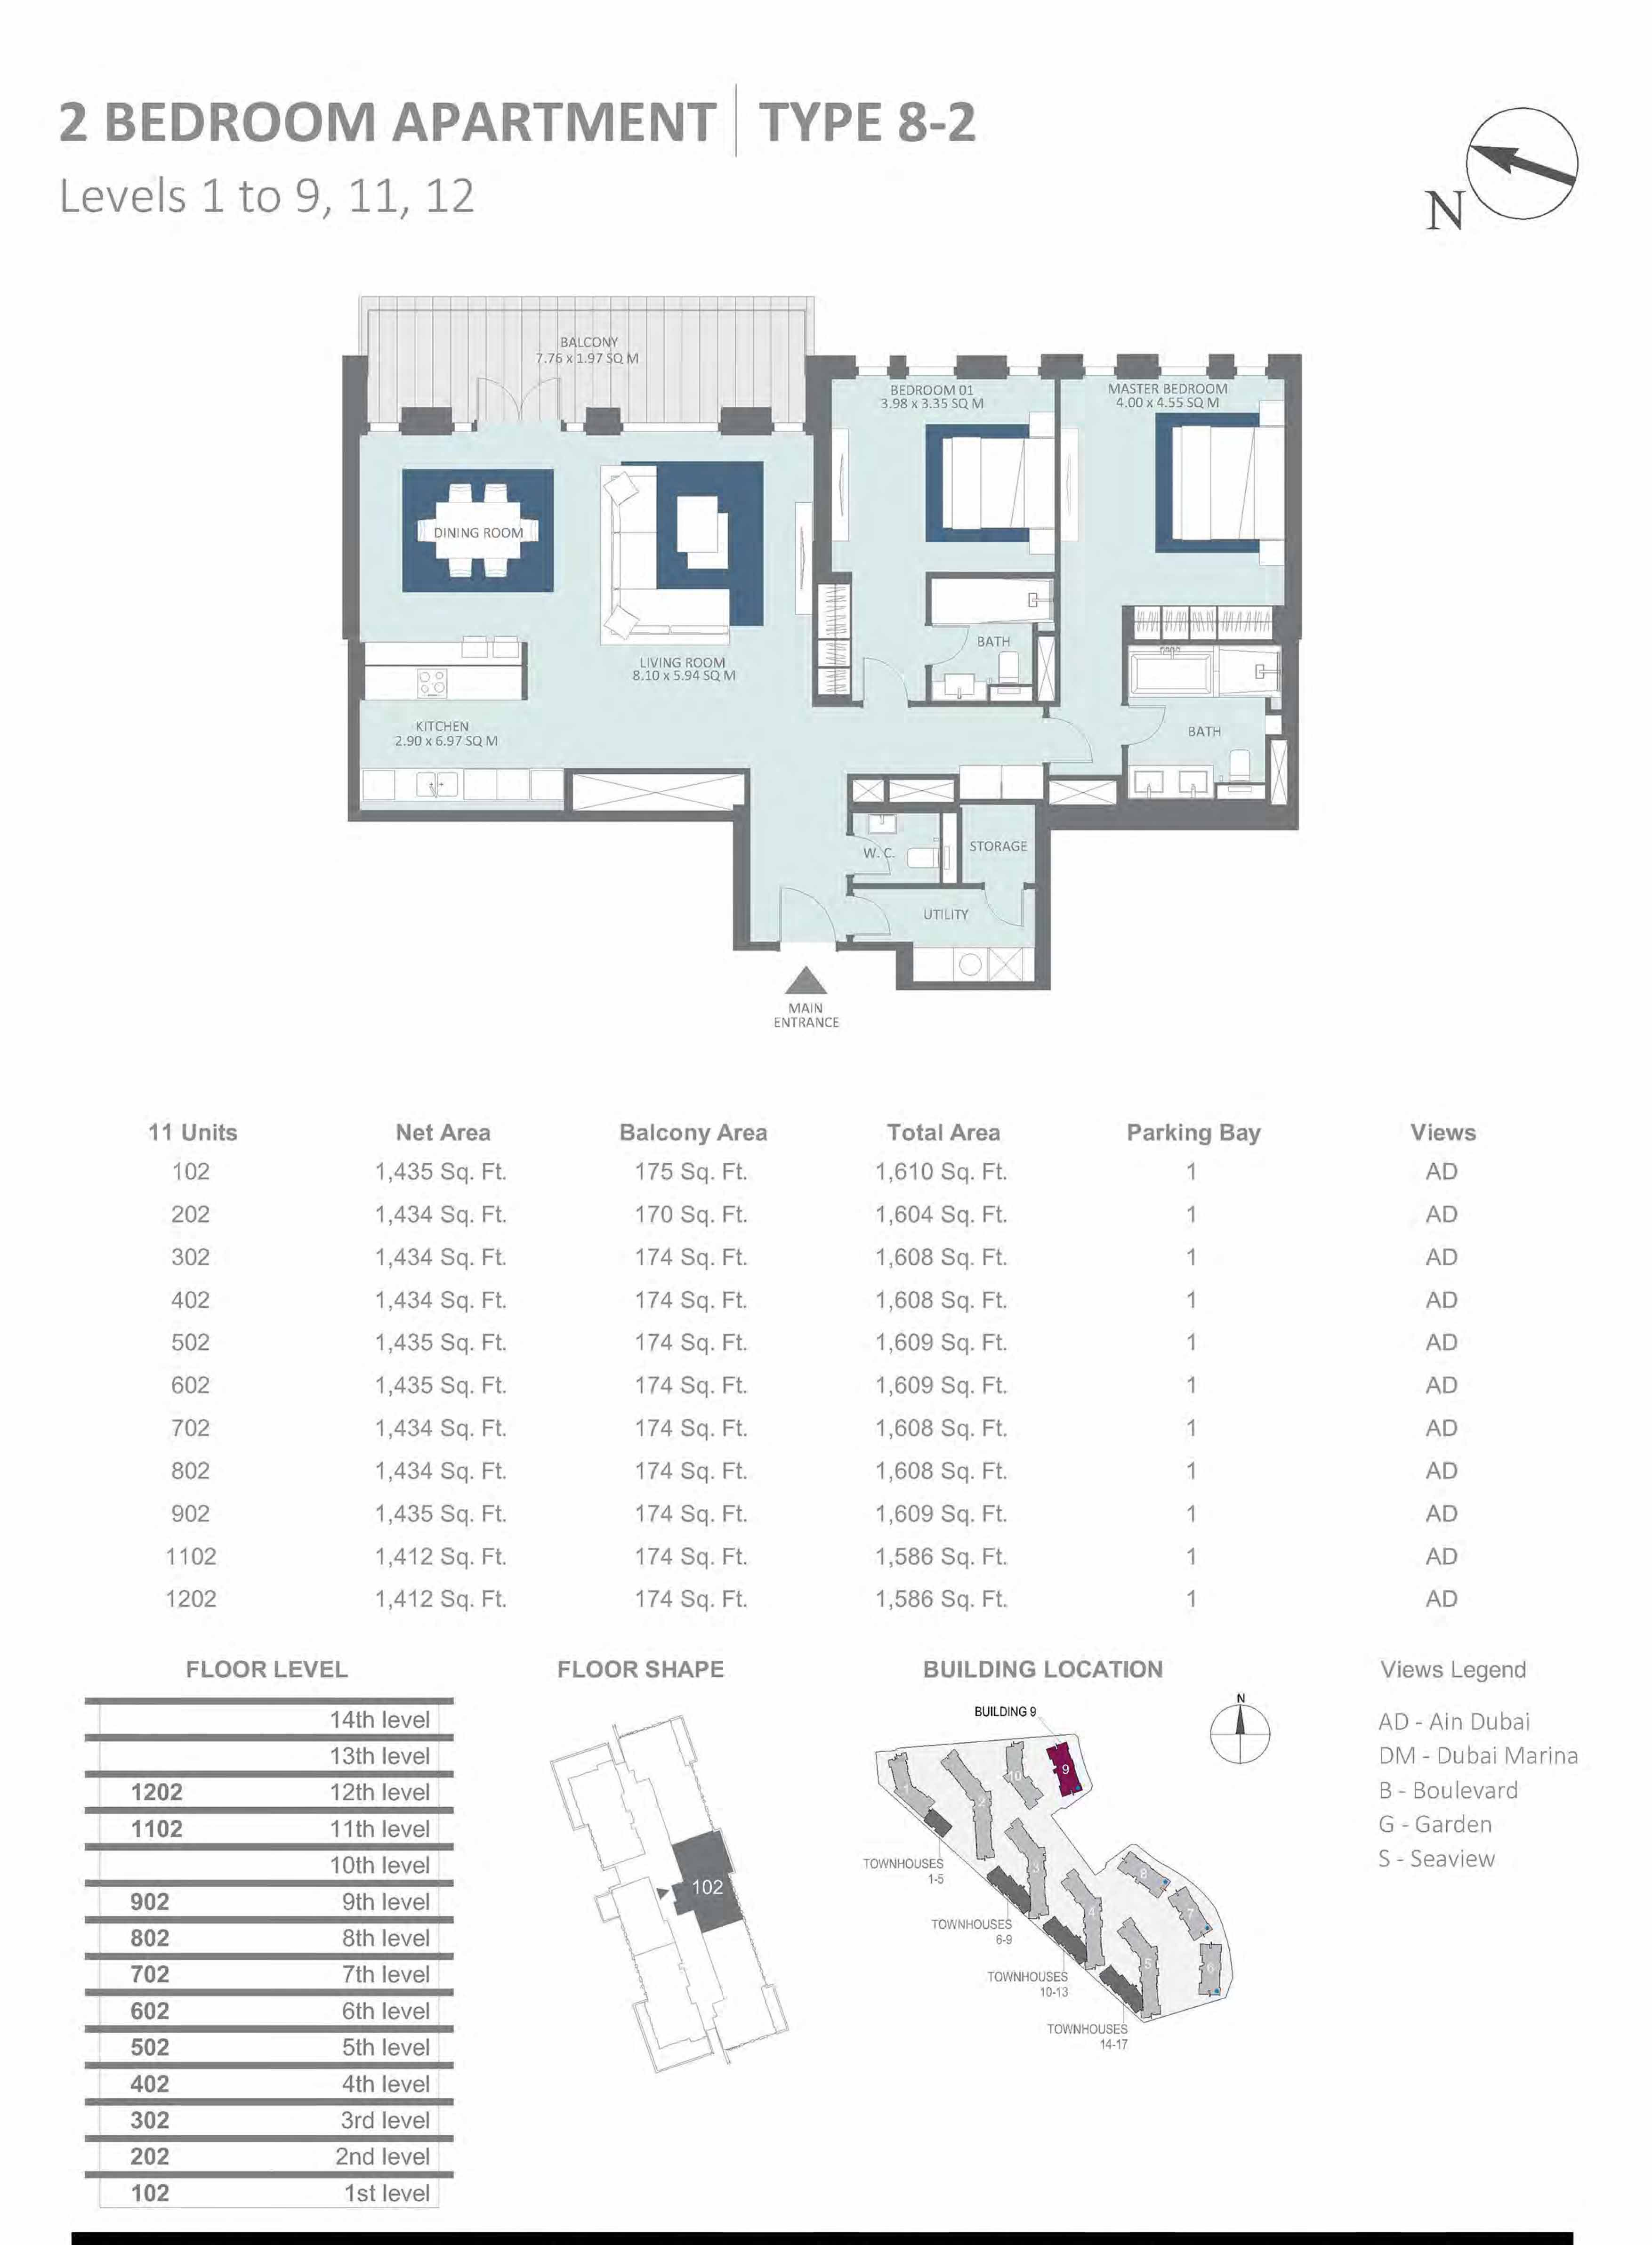 Building 9 - 2 Bedroom Type 8-2, Level 1-to-9 Size 1586 to 1610  sq. ft.